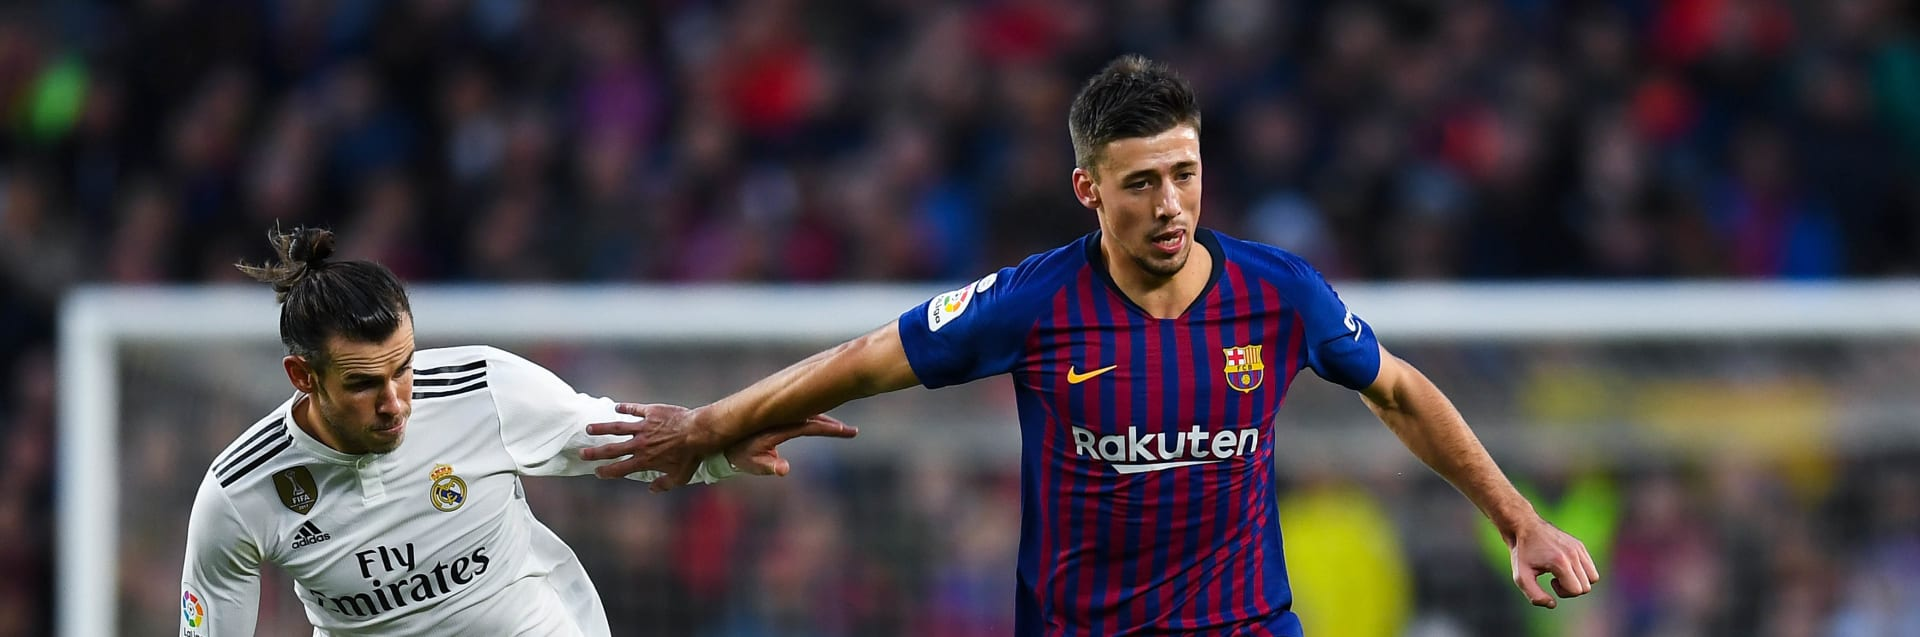 BARCELONA, SPAIN - OCTOBER 28:  Clement Lenglet of FC Barcelona competes for the ball with Gareth Bale of Real Madrid CF during the La Liga match between FC Barcelona and Real Madrid CF at Camp Nou on October 28, 2018 in Barcelona, Spain.  (Photo by David Ramos/Getty Images)